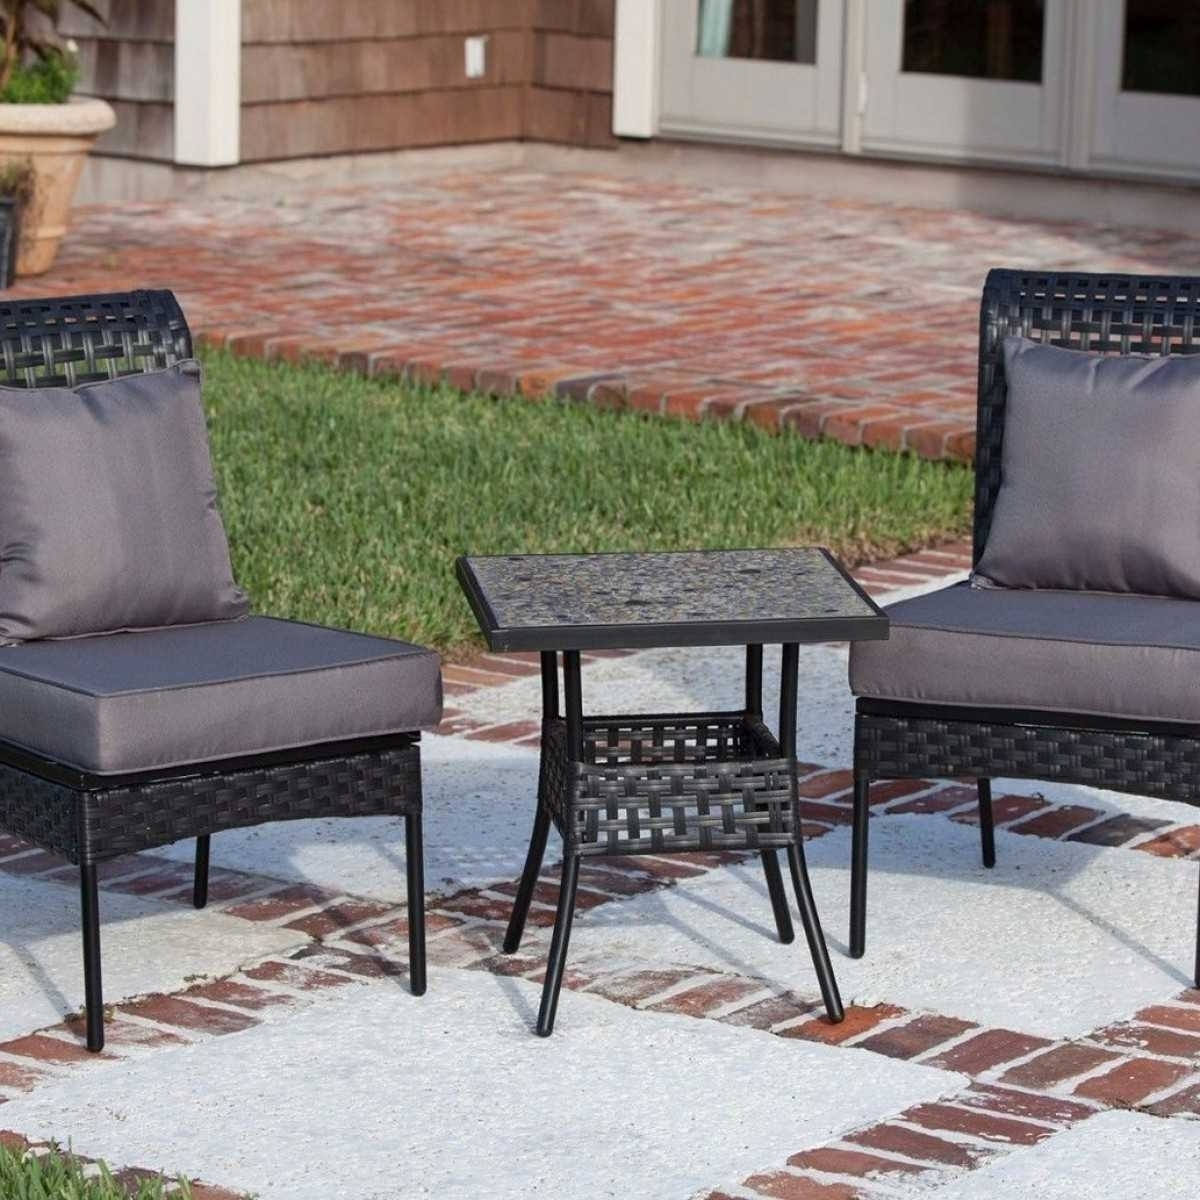 Most Current Patio Conversation Sets Under 200 With Regard To Cheap Patio Furniture Sets Under 200 Dining 2018 And Stunning Trends (View 15 of 15)